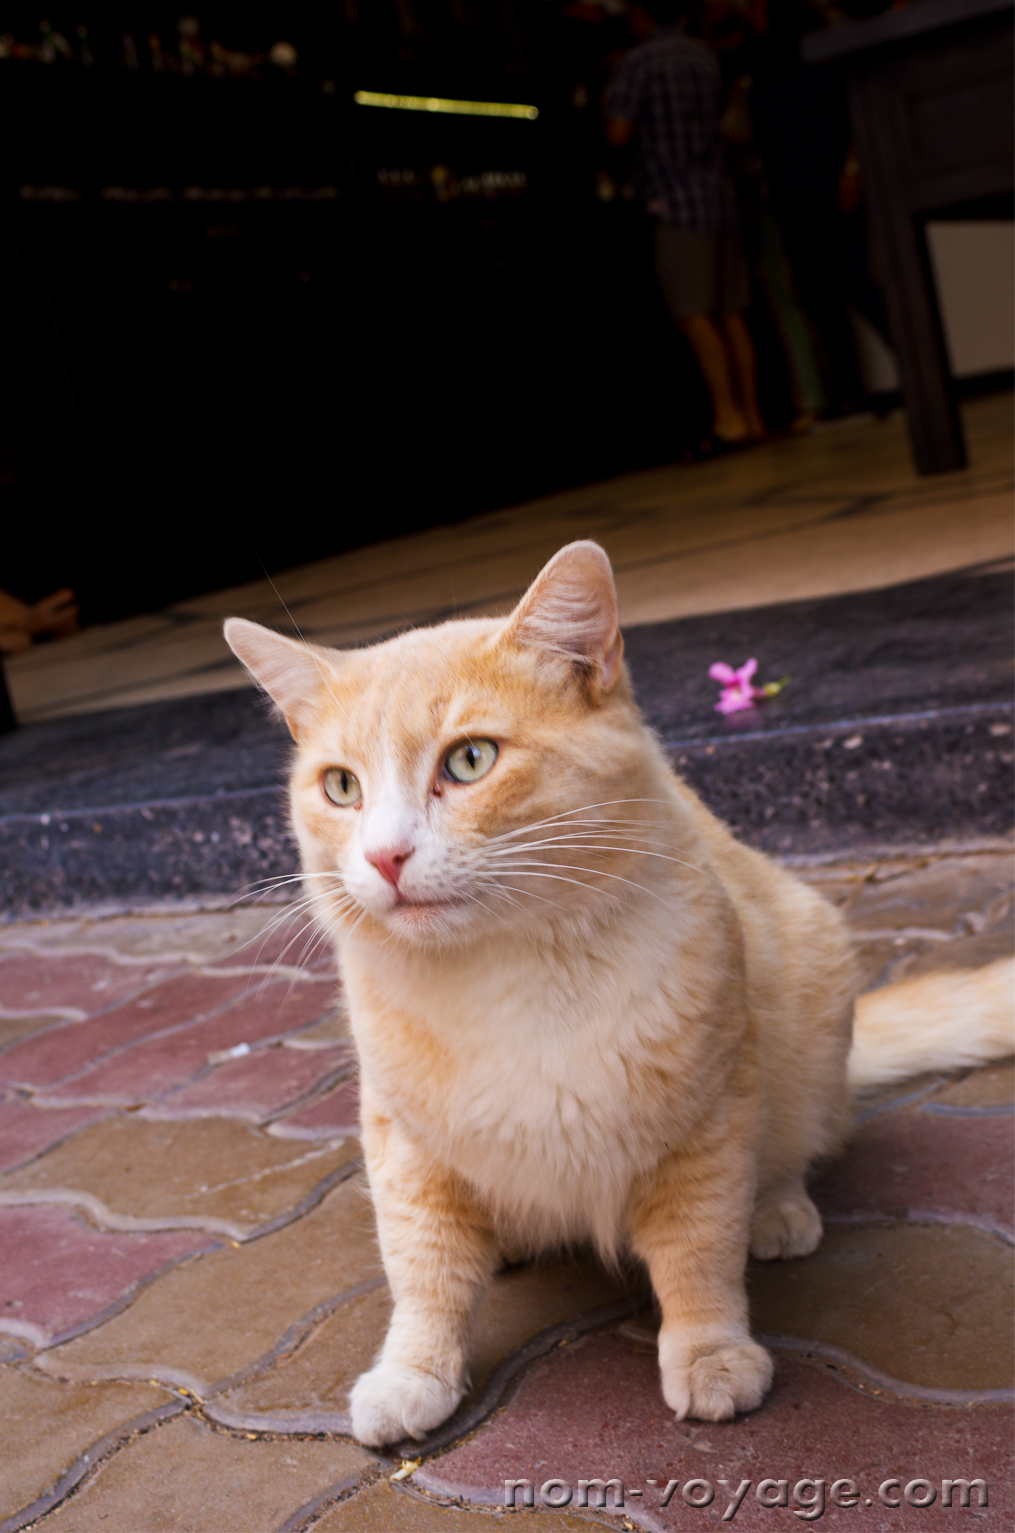 I met this cat outside a cafe in the Medina. He/she really loved cat treats.